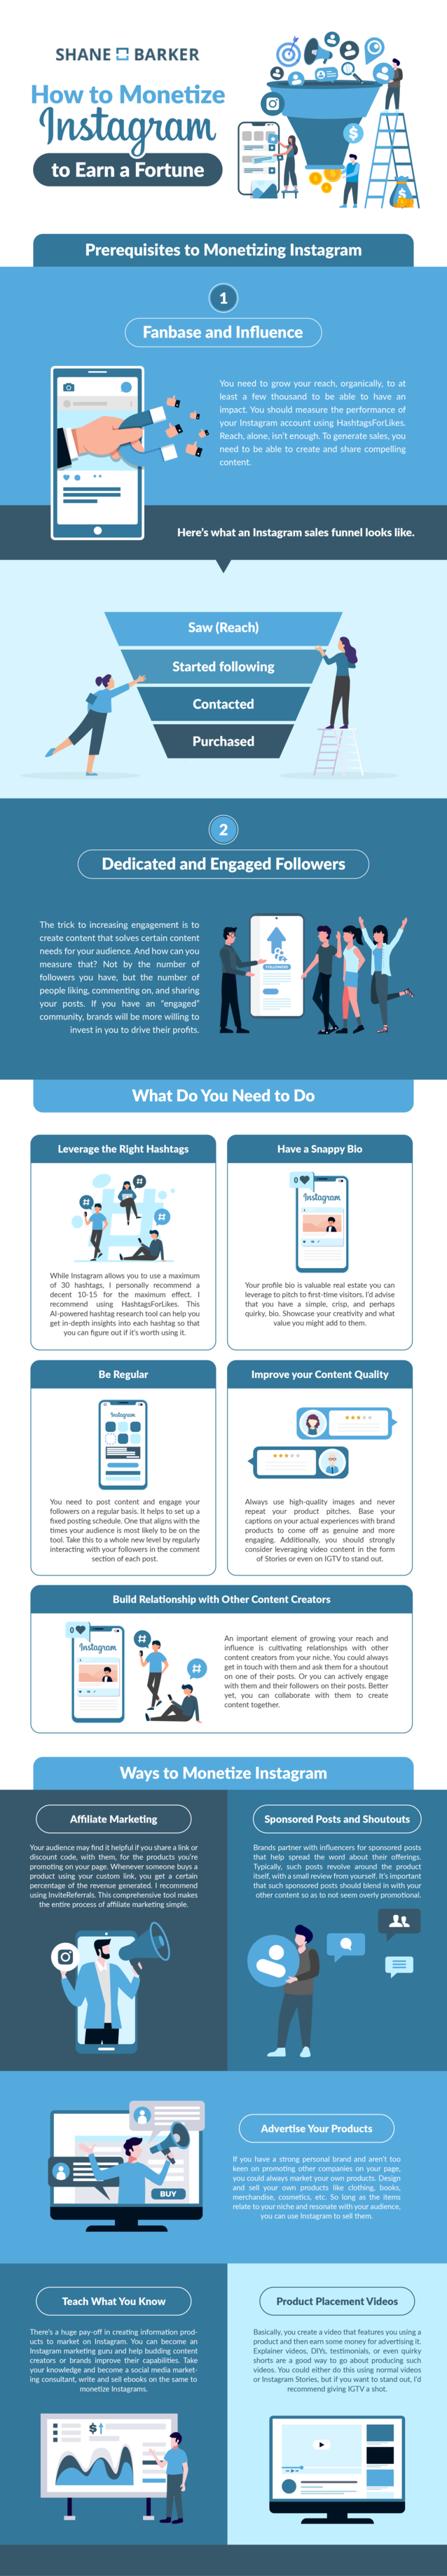 How You Can Make Money on Instagram Easily: A Guide #infographic